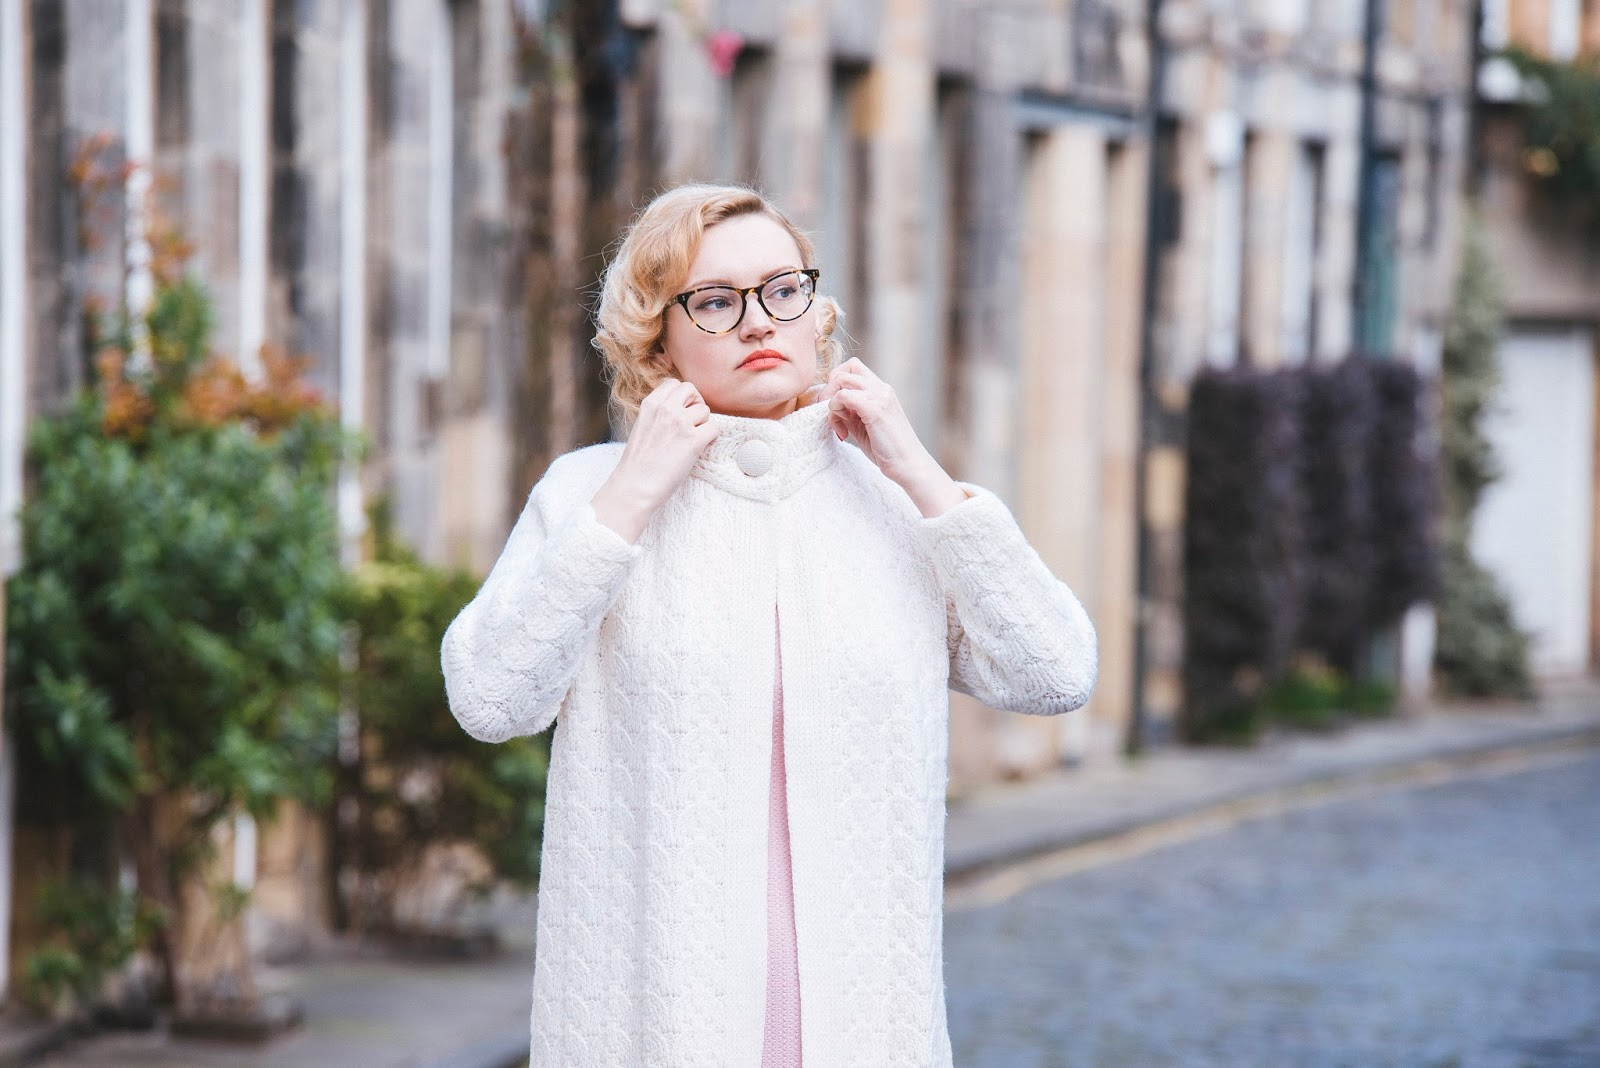 Washington Gwande photography, vintage fashion blogger, vintage 1960s coat and dress in edinburgh, circus lane photoshoot location, thunderbird penelope outfit, pink knit dress, #30wear campaign, caring for vintage clothes, sustainable fashion, ethical fashion, getting wear out of your clothes, thoughtful fashion